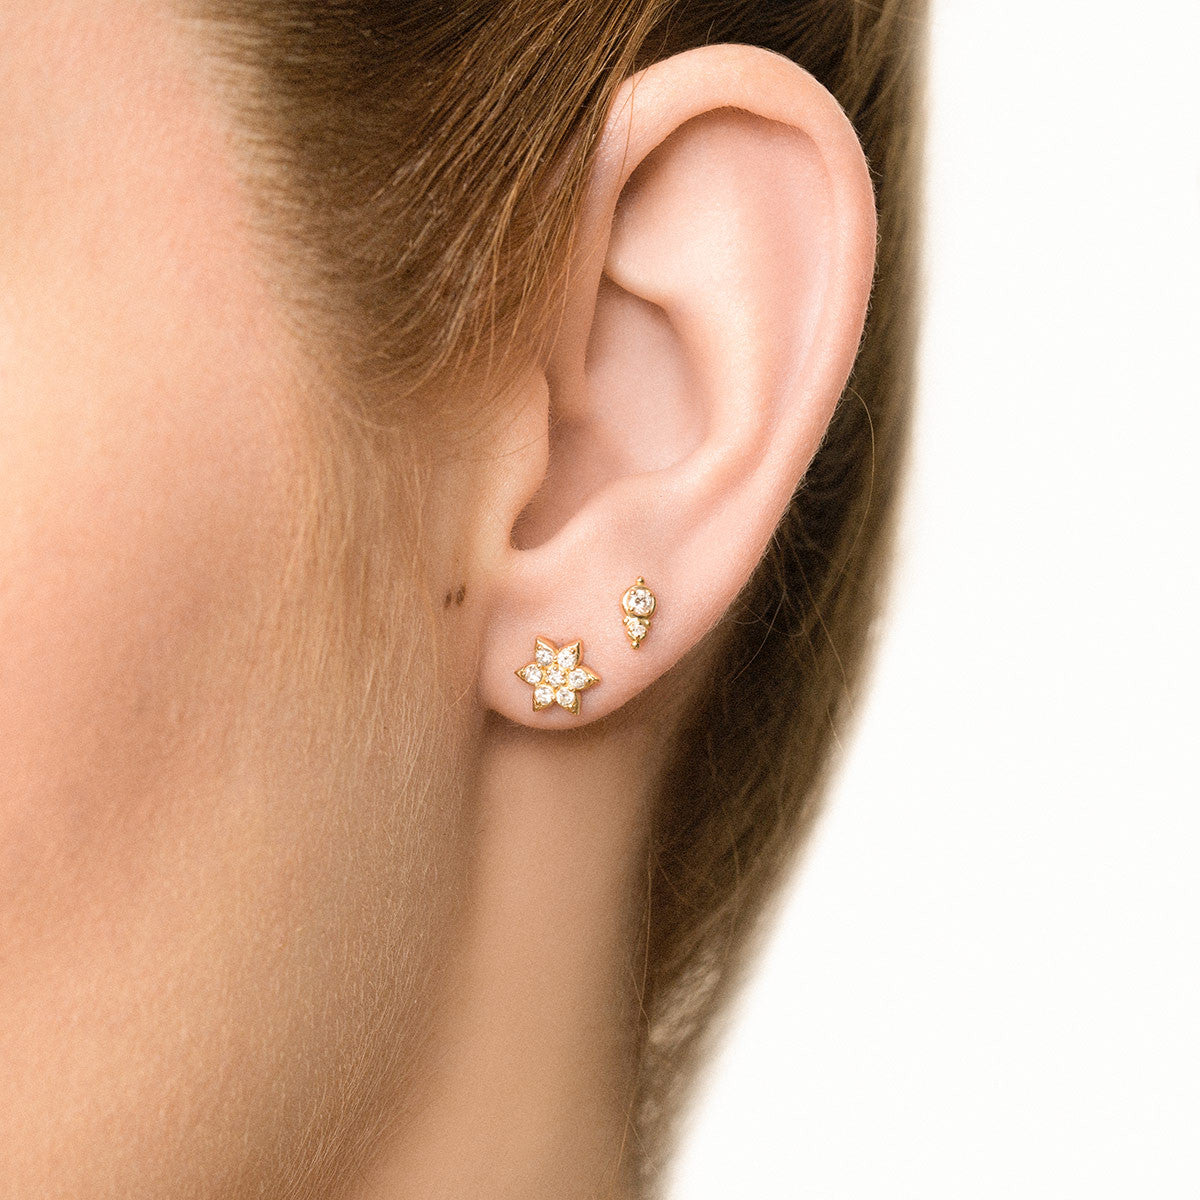 Are You Am I - Lassiel FINE Earring